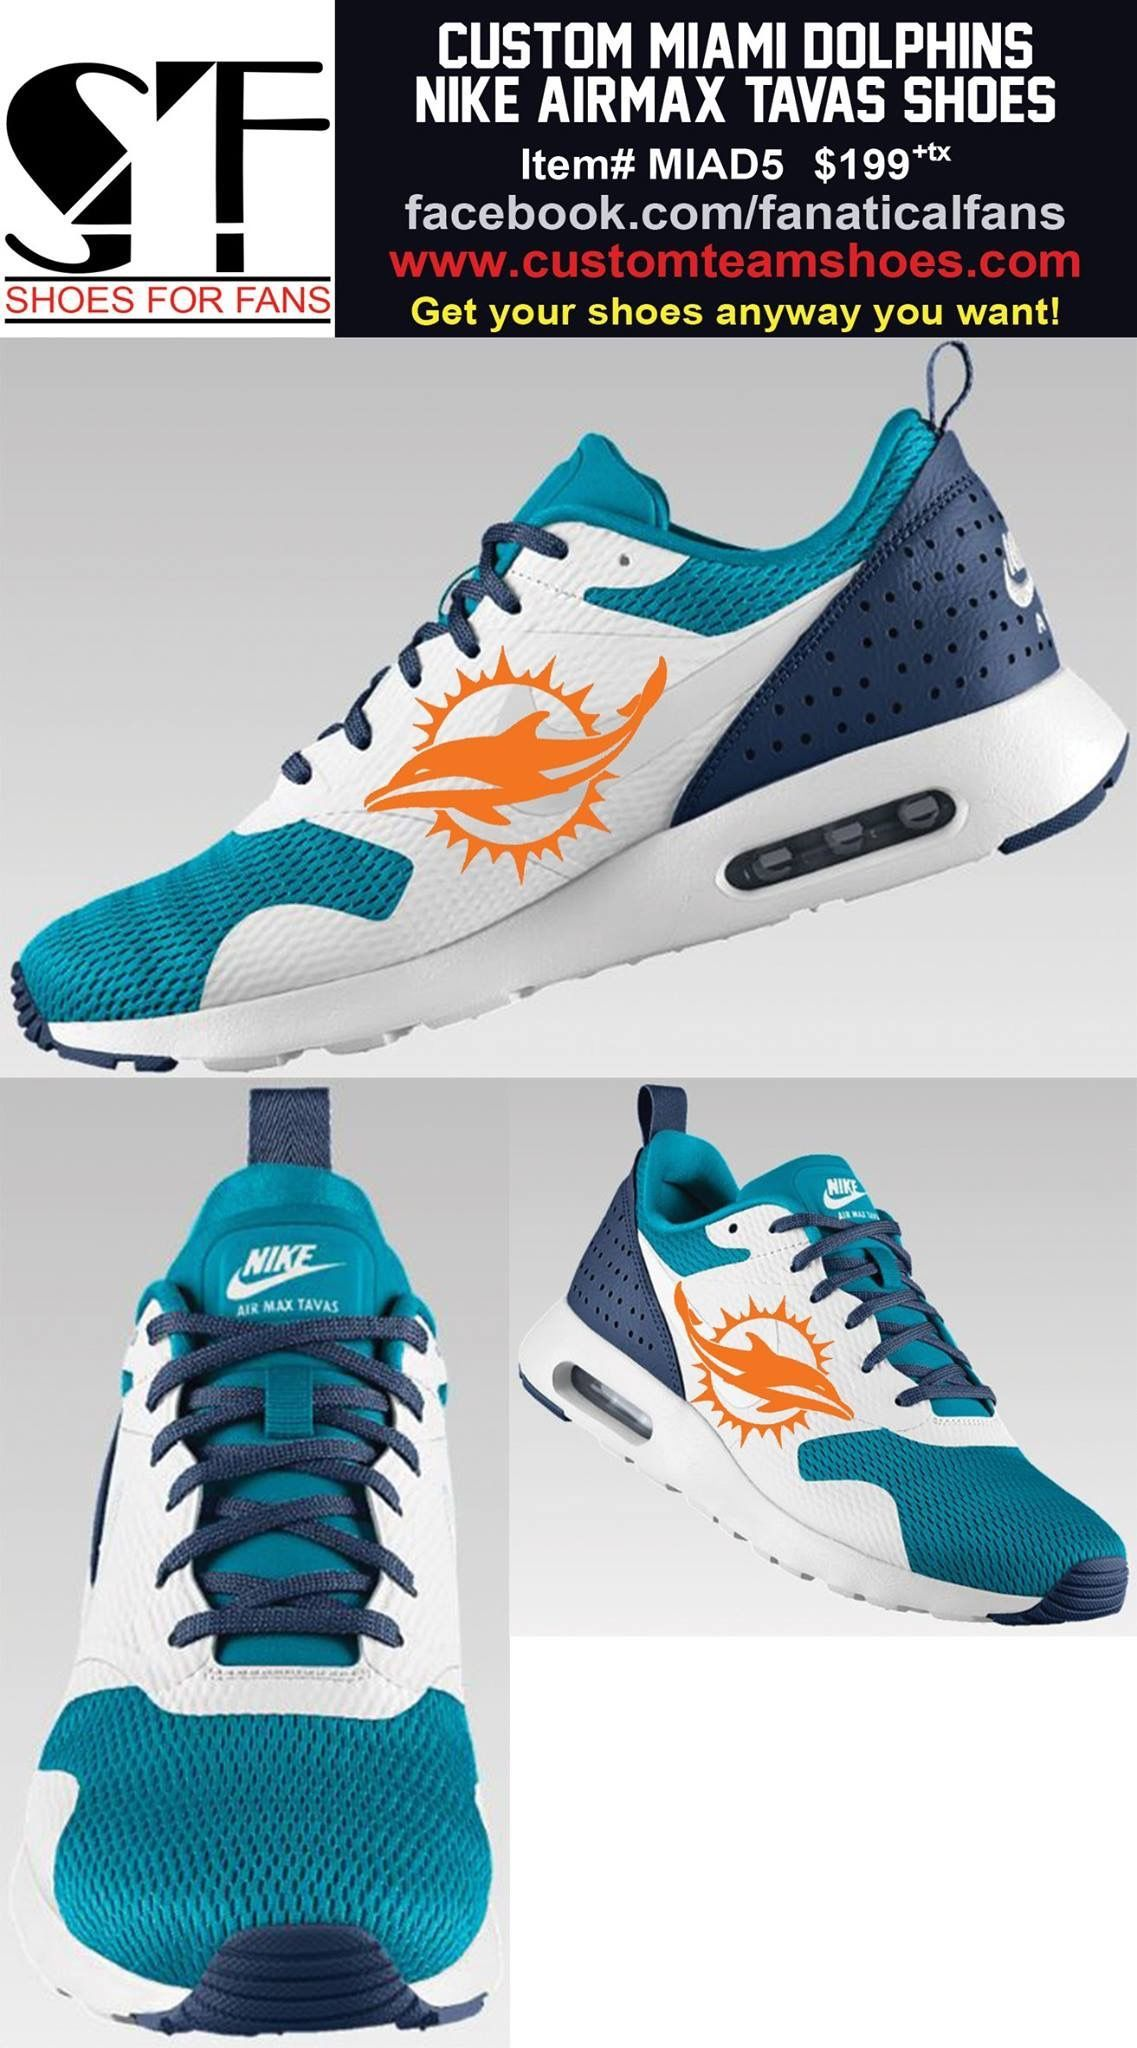 43+ Miami dolphins nike shoes ideas information